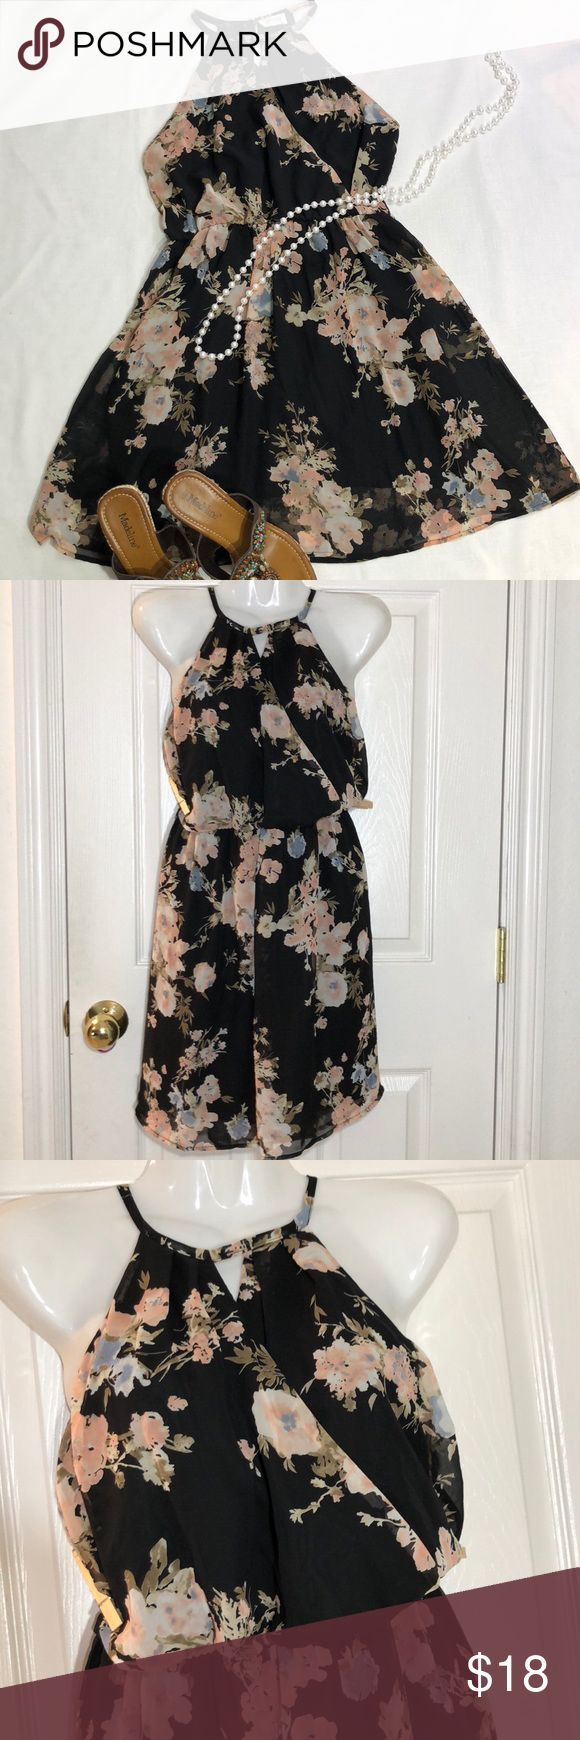 """Sienna Sky Sleeveless High Neck Flowy Flower Dress Great pre owned normal wash wear condition Sienna Sky flowy black sheer flowery dress with built in slip. Size medium. Measurements; chest 16"""" waist (elastic unstretch) 13.5"""" length (top collar to hem)  31"""". Smoke and pet free home. sienna Sky Dresses"""